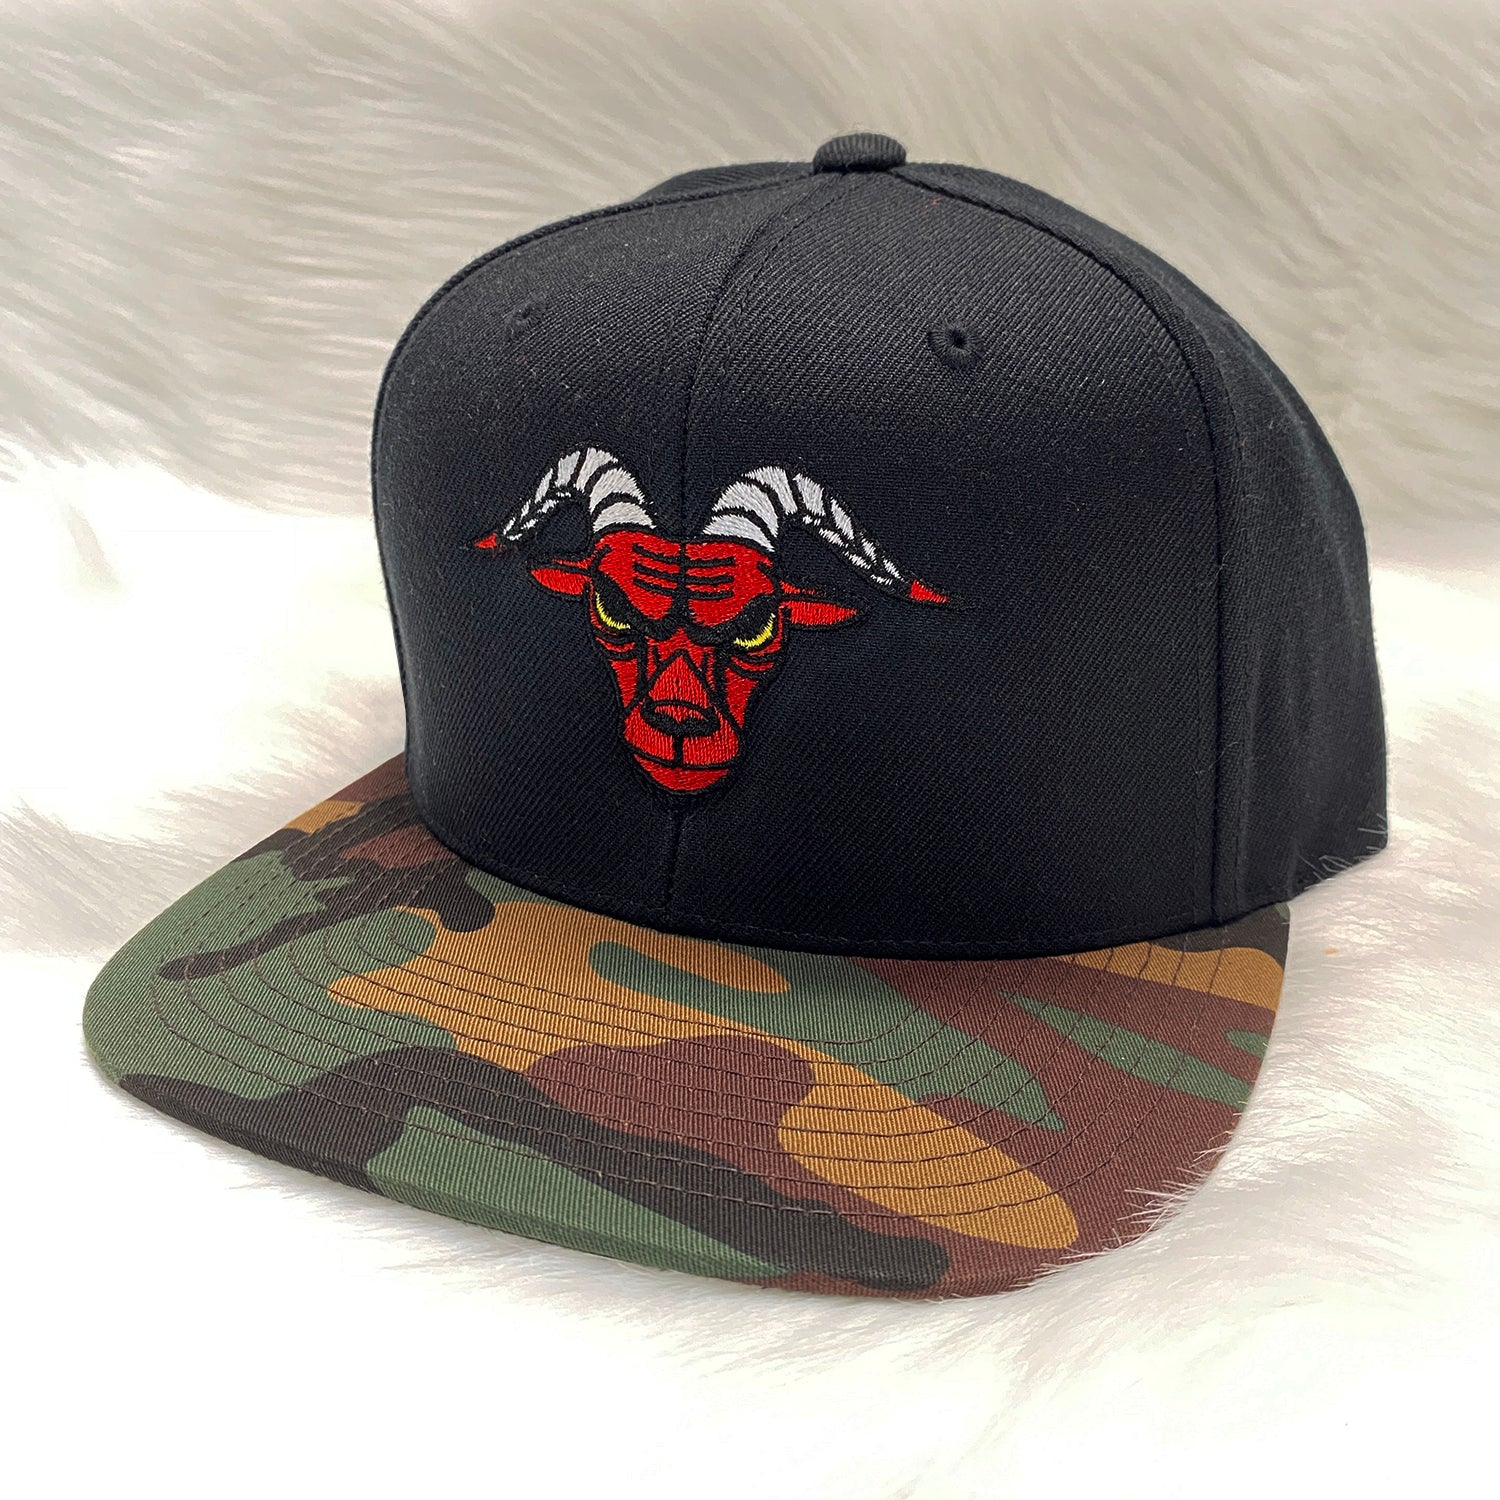 GOATS - Black/Camo Bill - Hat